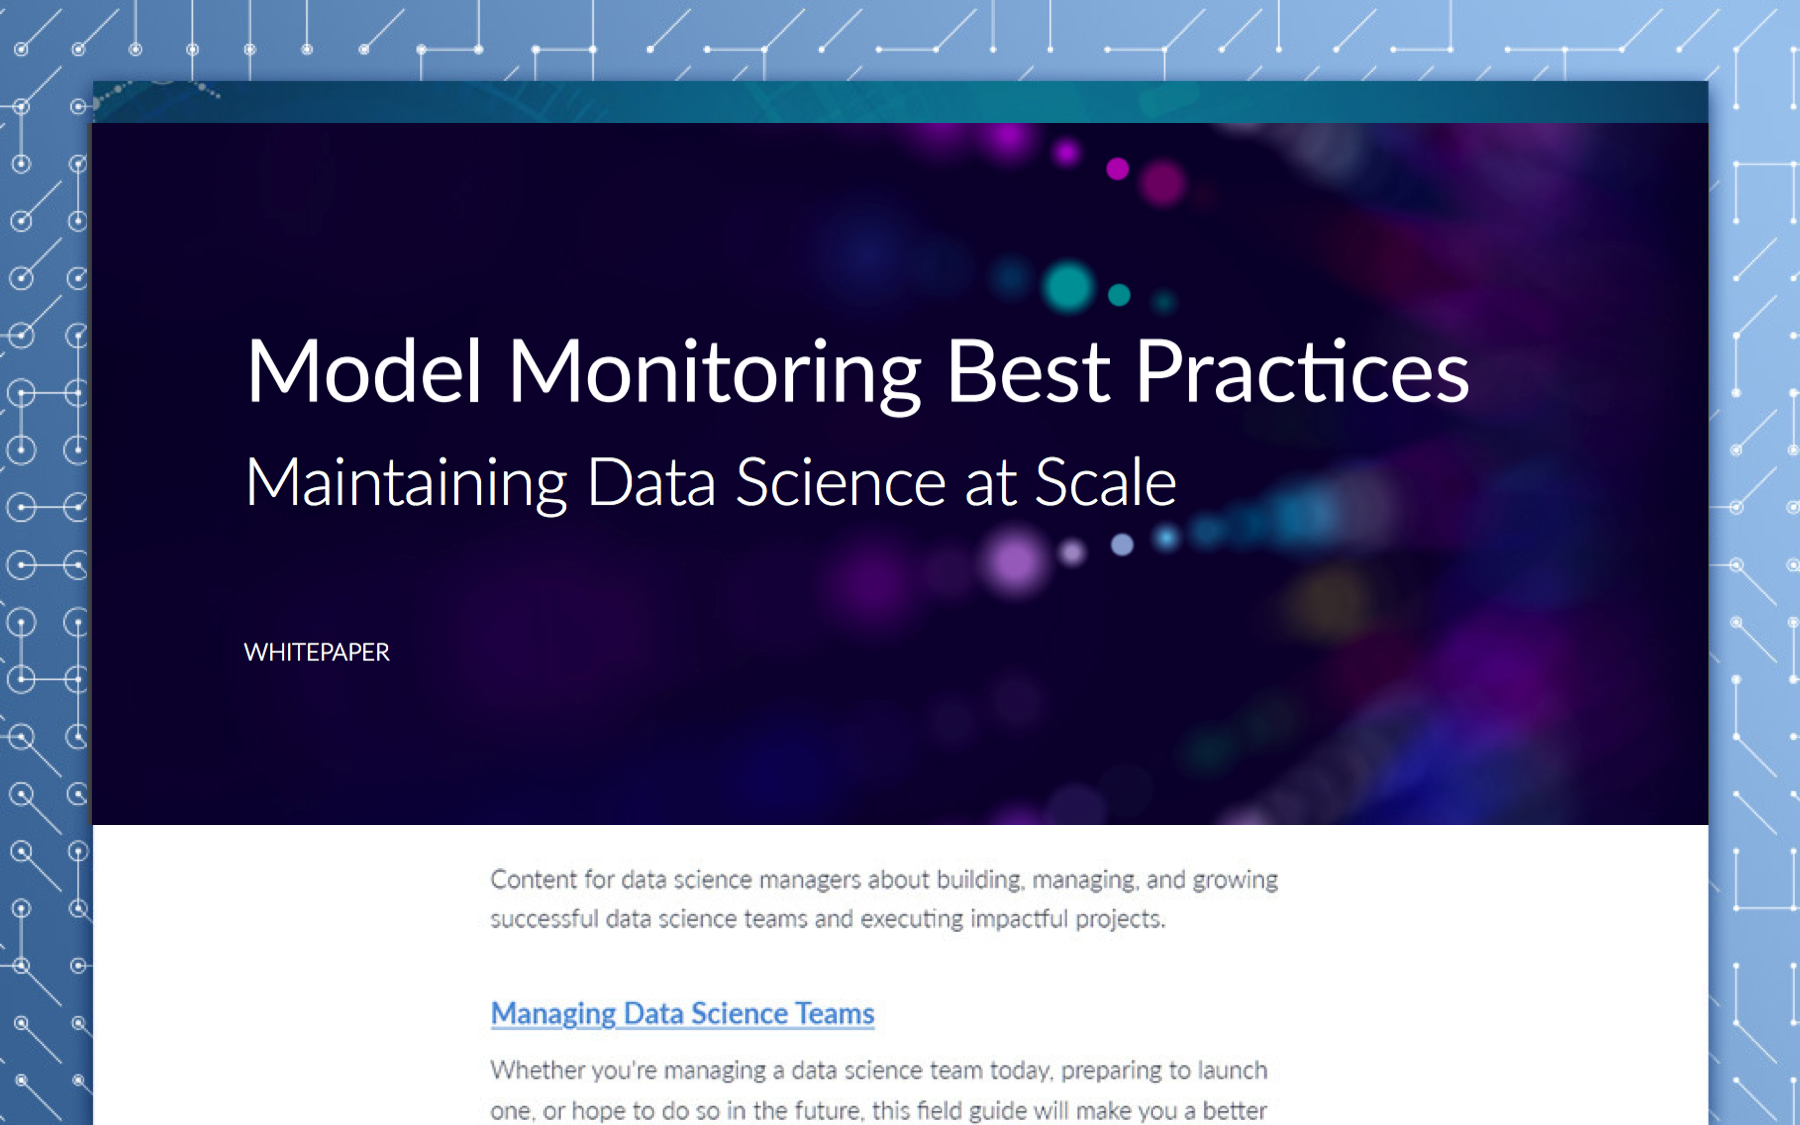 Model Monitoring Best Practices